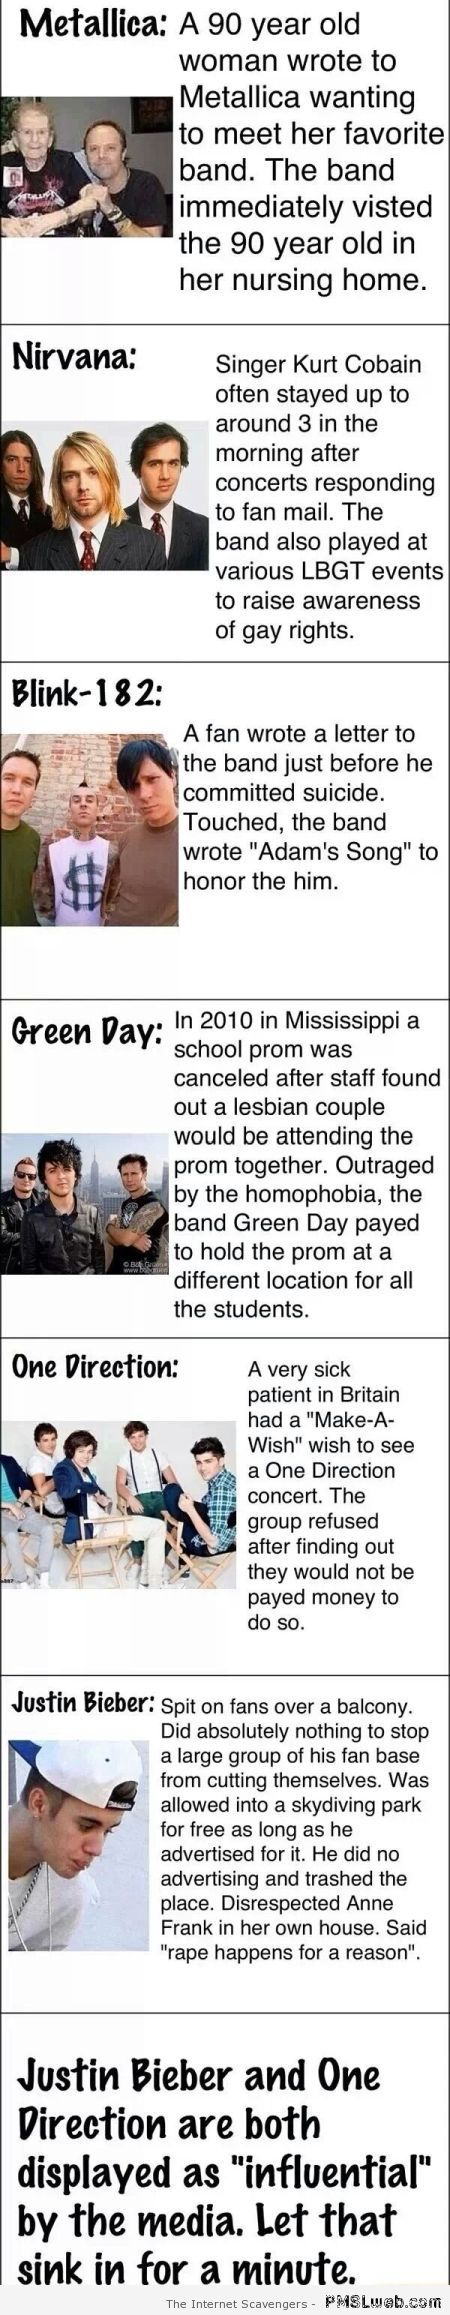 Bieber and one direction compared to other bands at PMSLweb.com